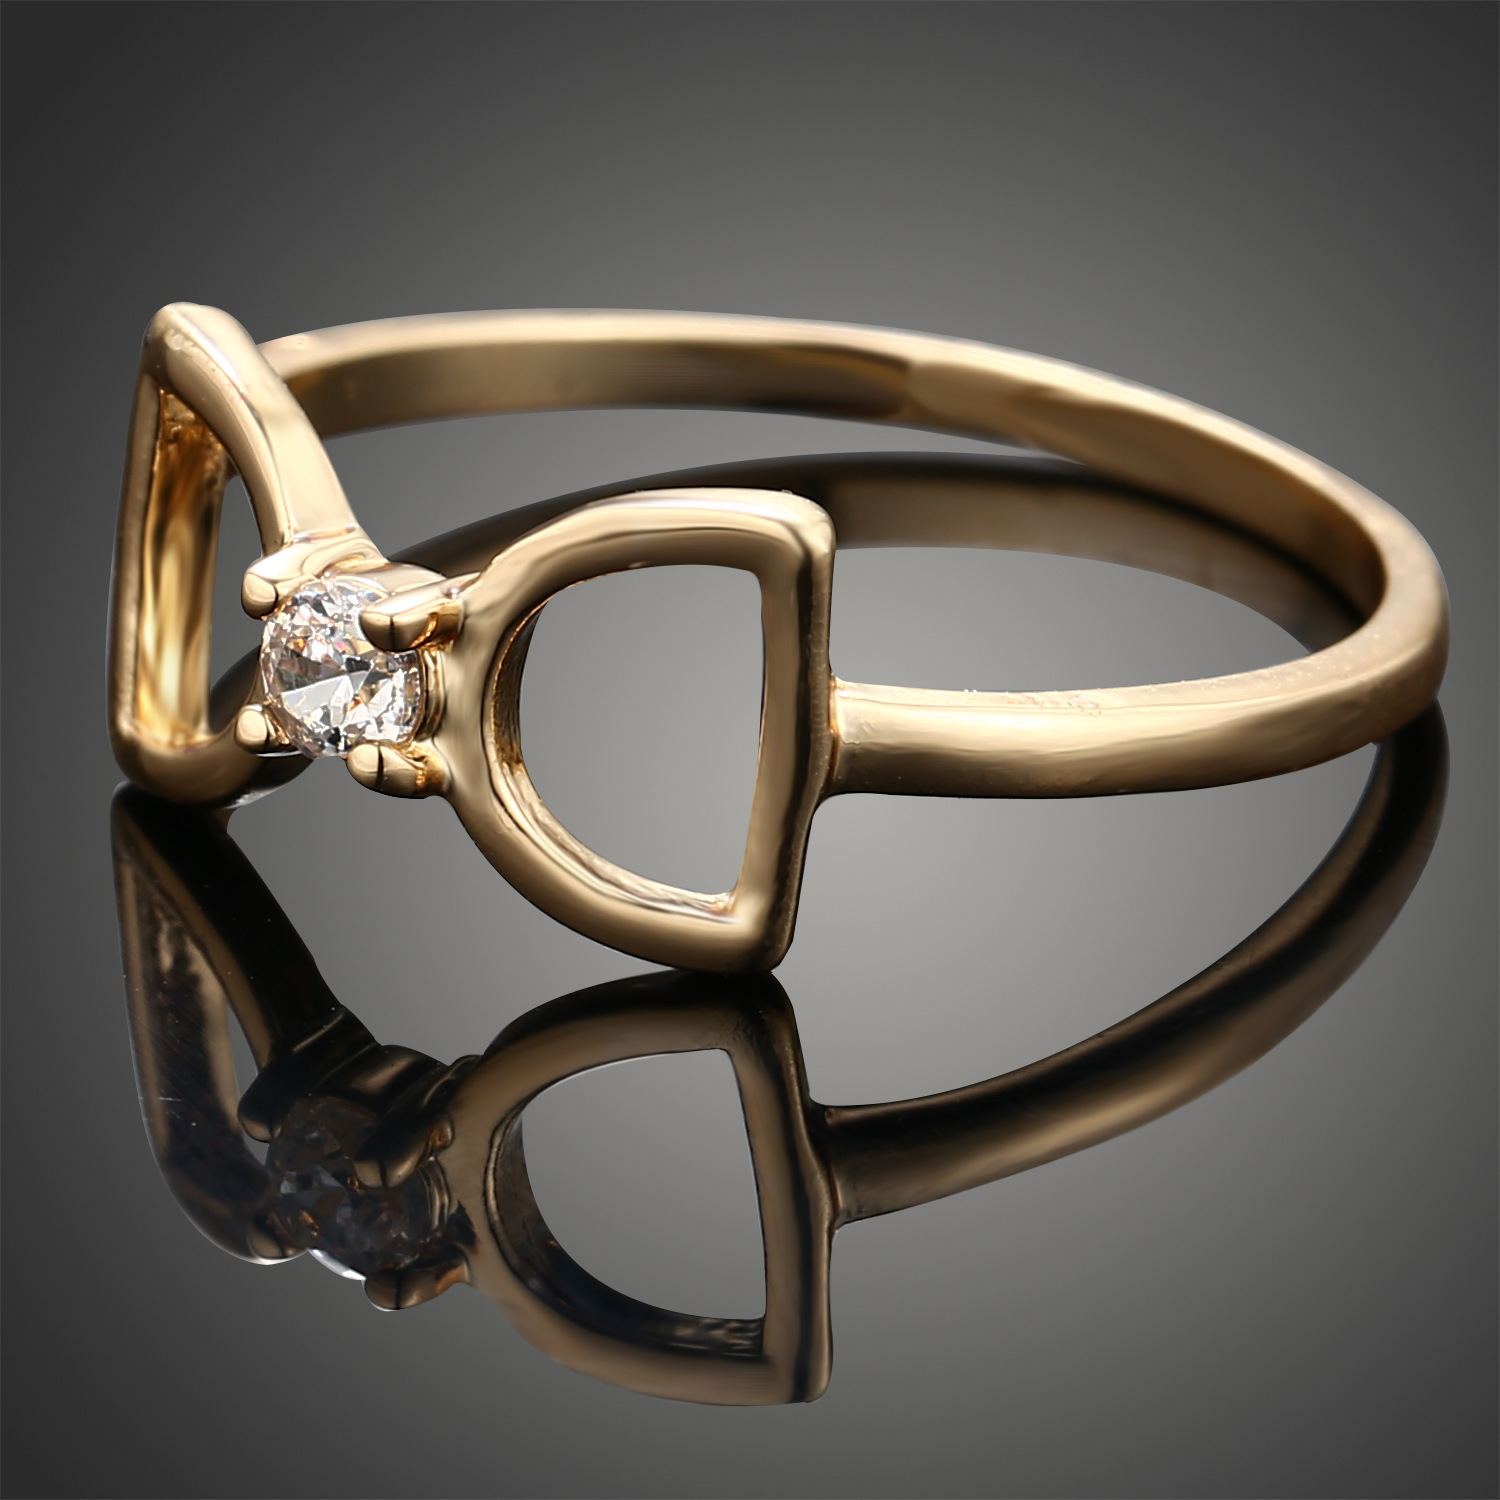 s pin korean pinterest odyssey ring and rings gold jewelry